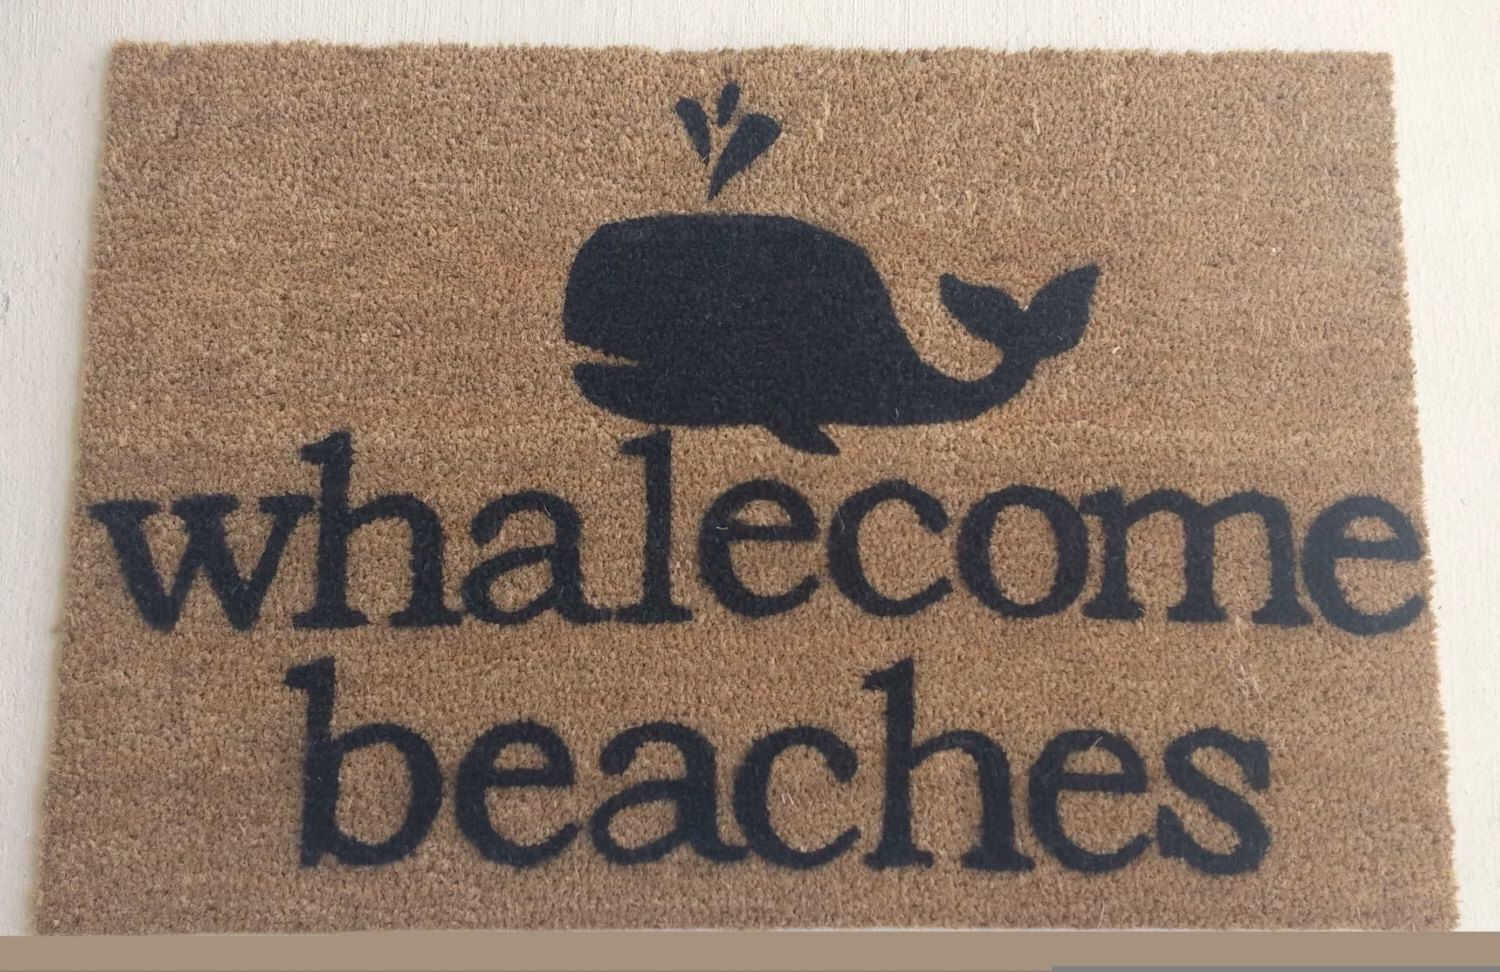 Whalecome Beaches Doormat By JustSmileAlways On Etsy  Https://www.etsy.com/listing/234850758/whalecome Beaches Doormat